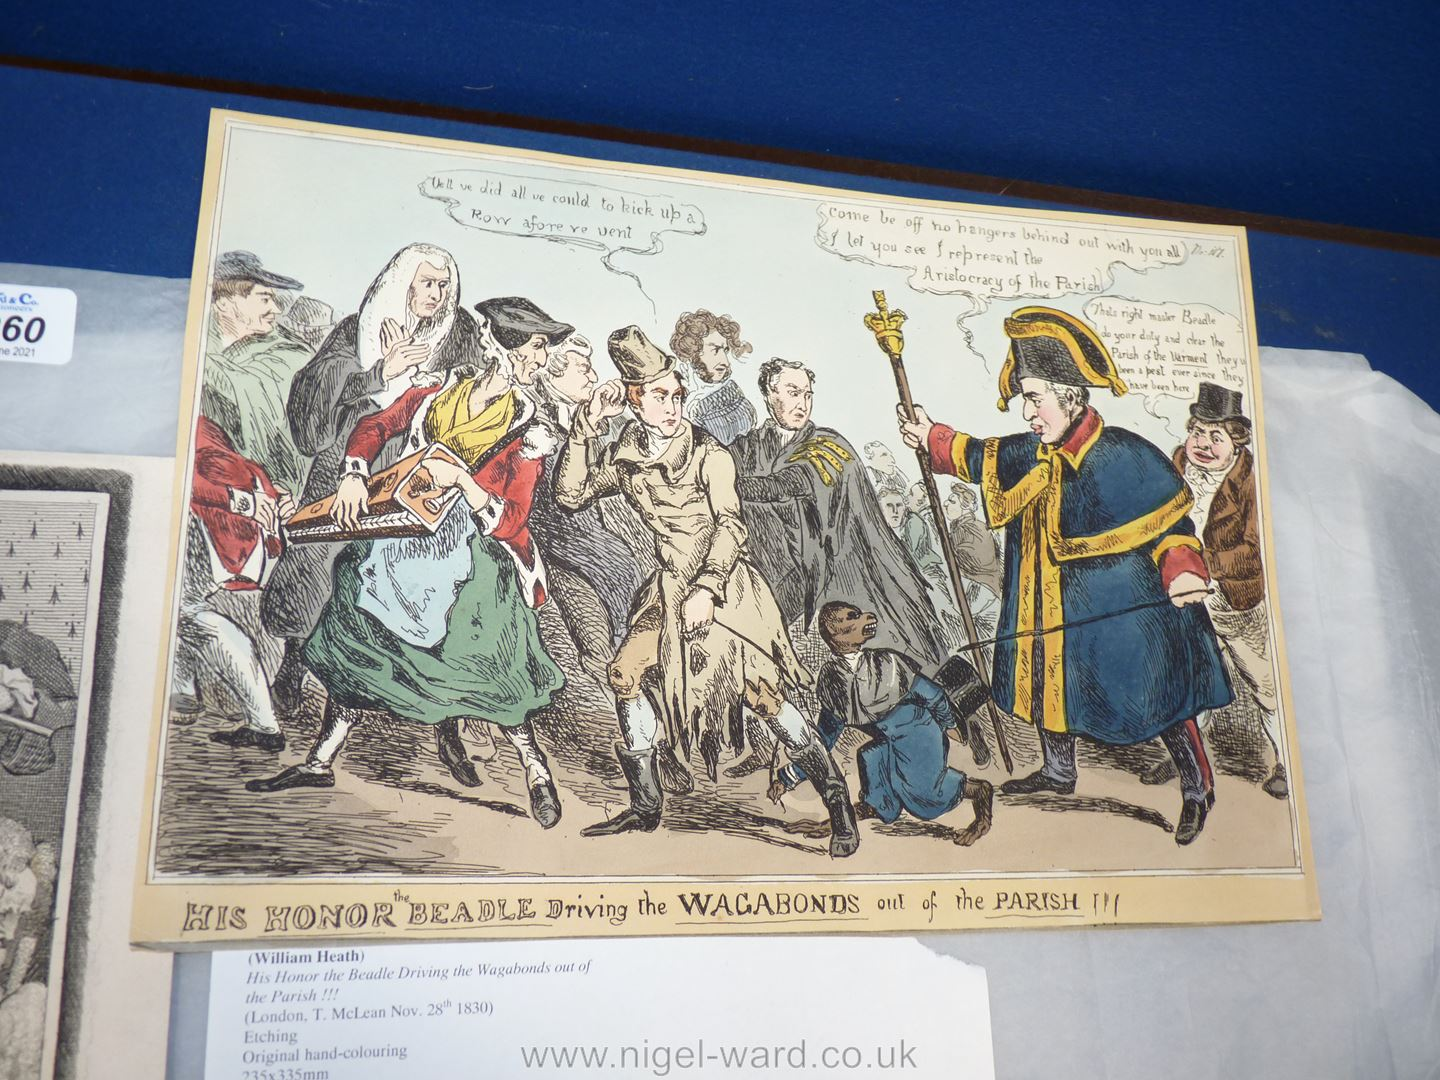 A scarce satirical engraving by William Heath (1830) 'His Honor the Beadle Driving the Vagabonds - Image 2 of 4